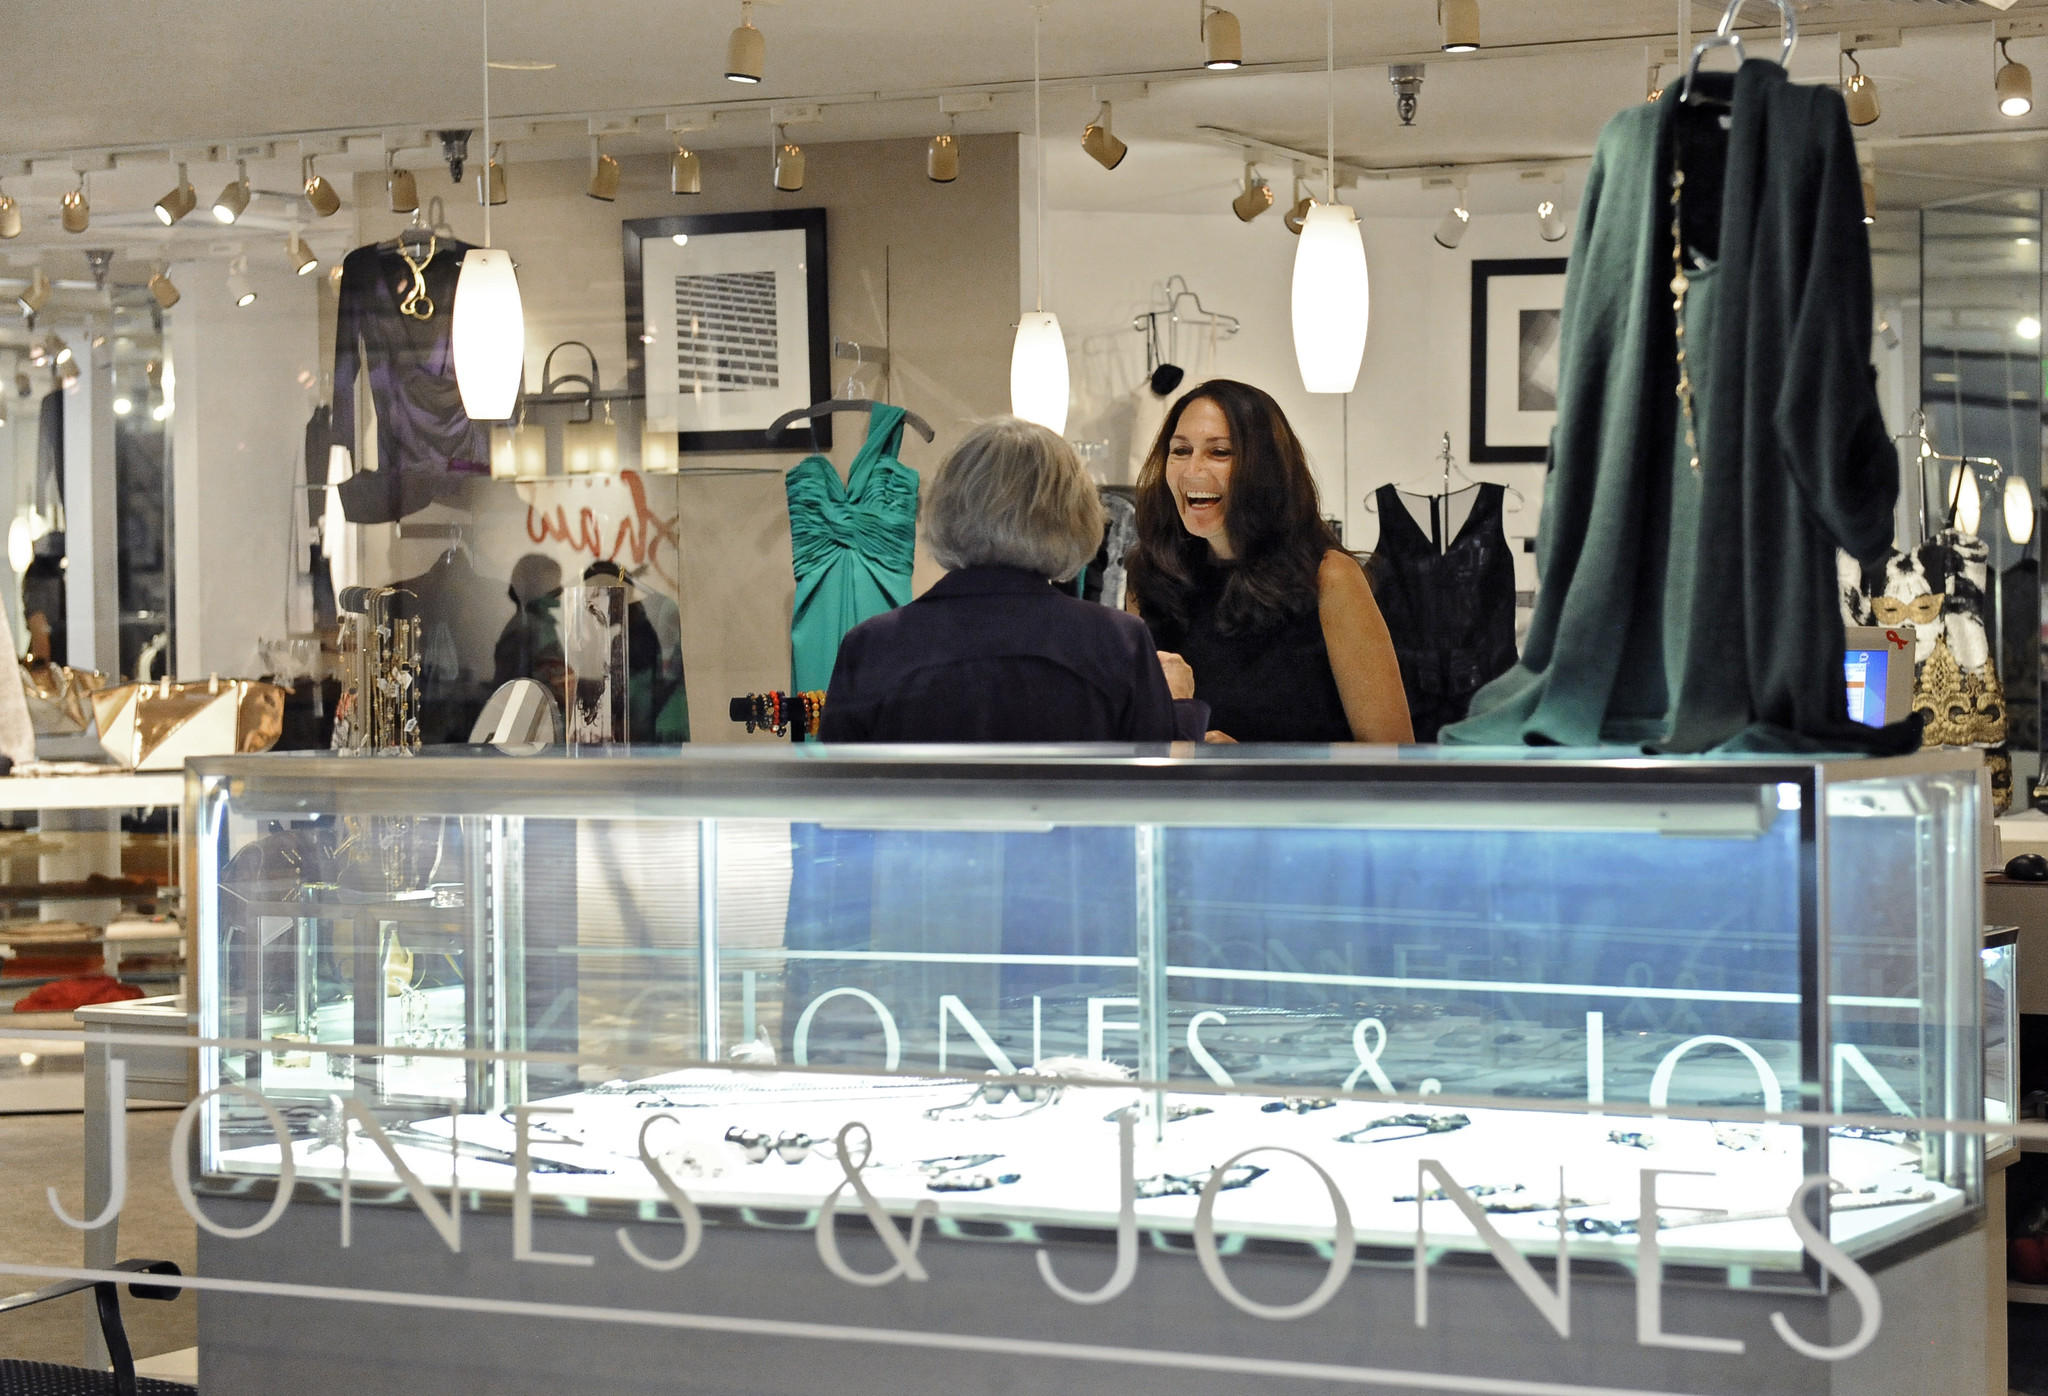 Karen Ciurca-Weiner, right, manager of Jones & Jones boutique at the Village of Cross Keys, helps a customer at the store. The store is participating in an upcoming fashion show to benefit House of Ruth.